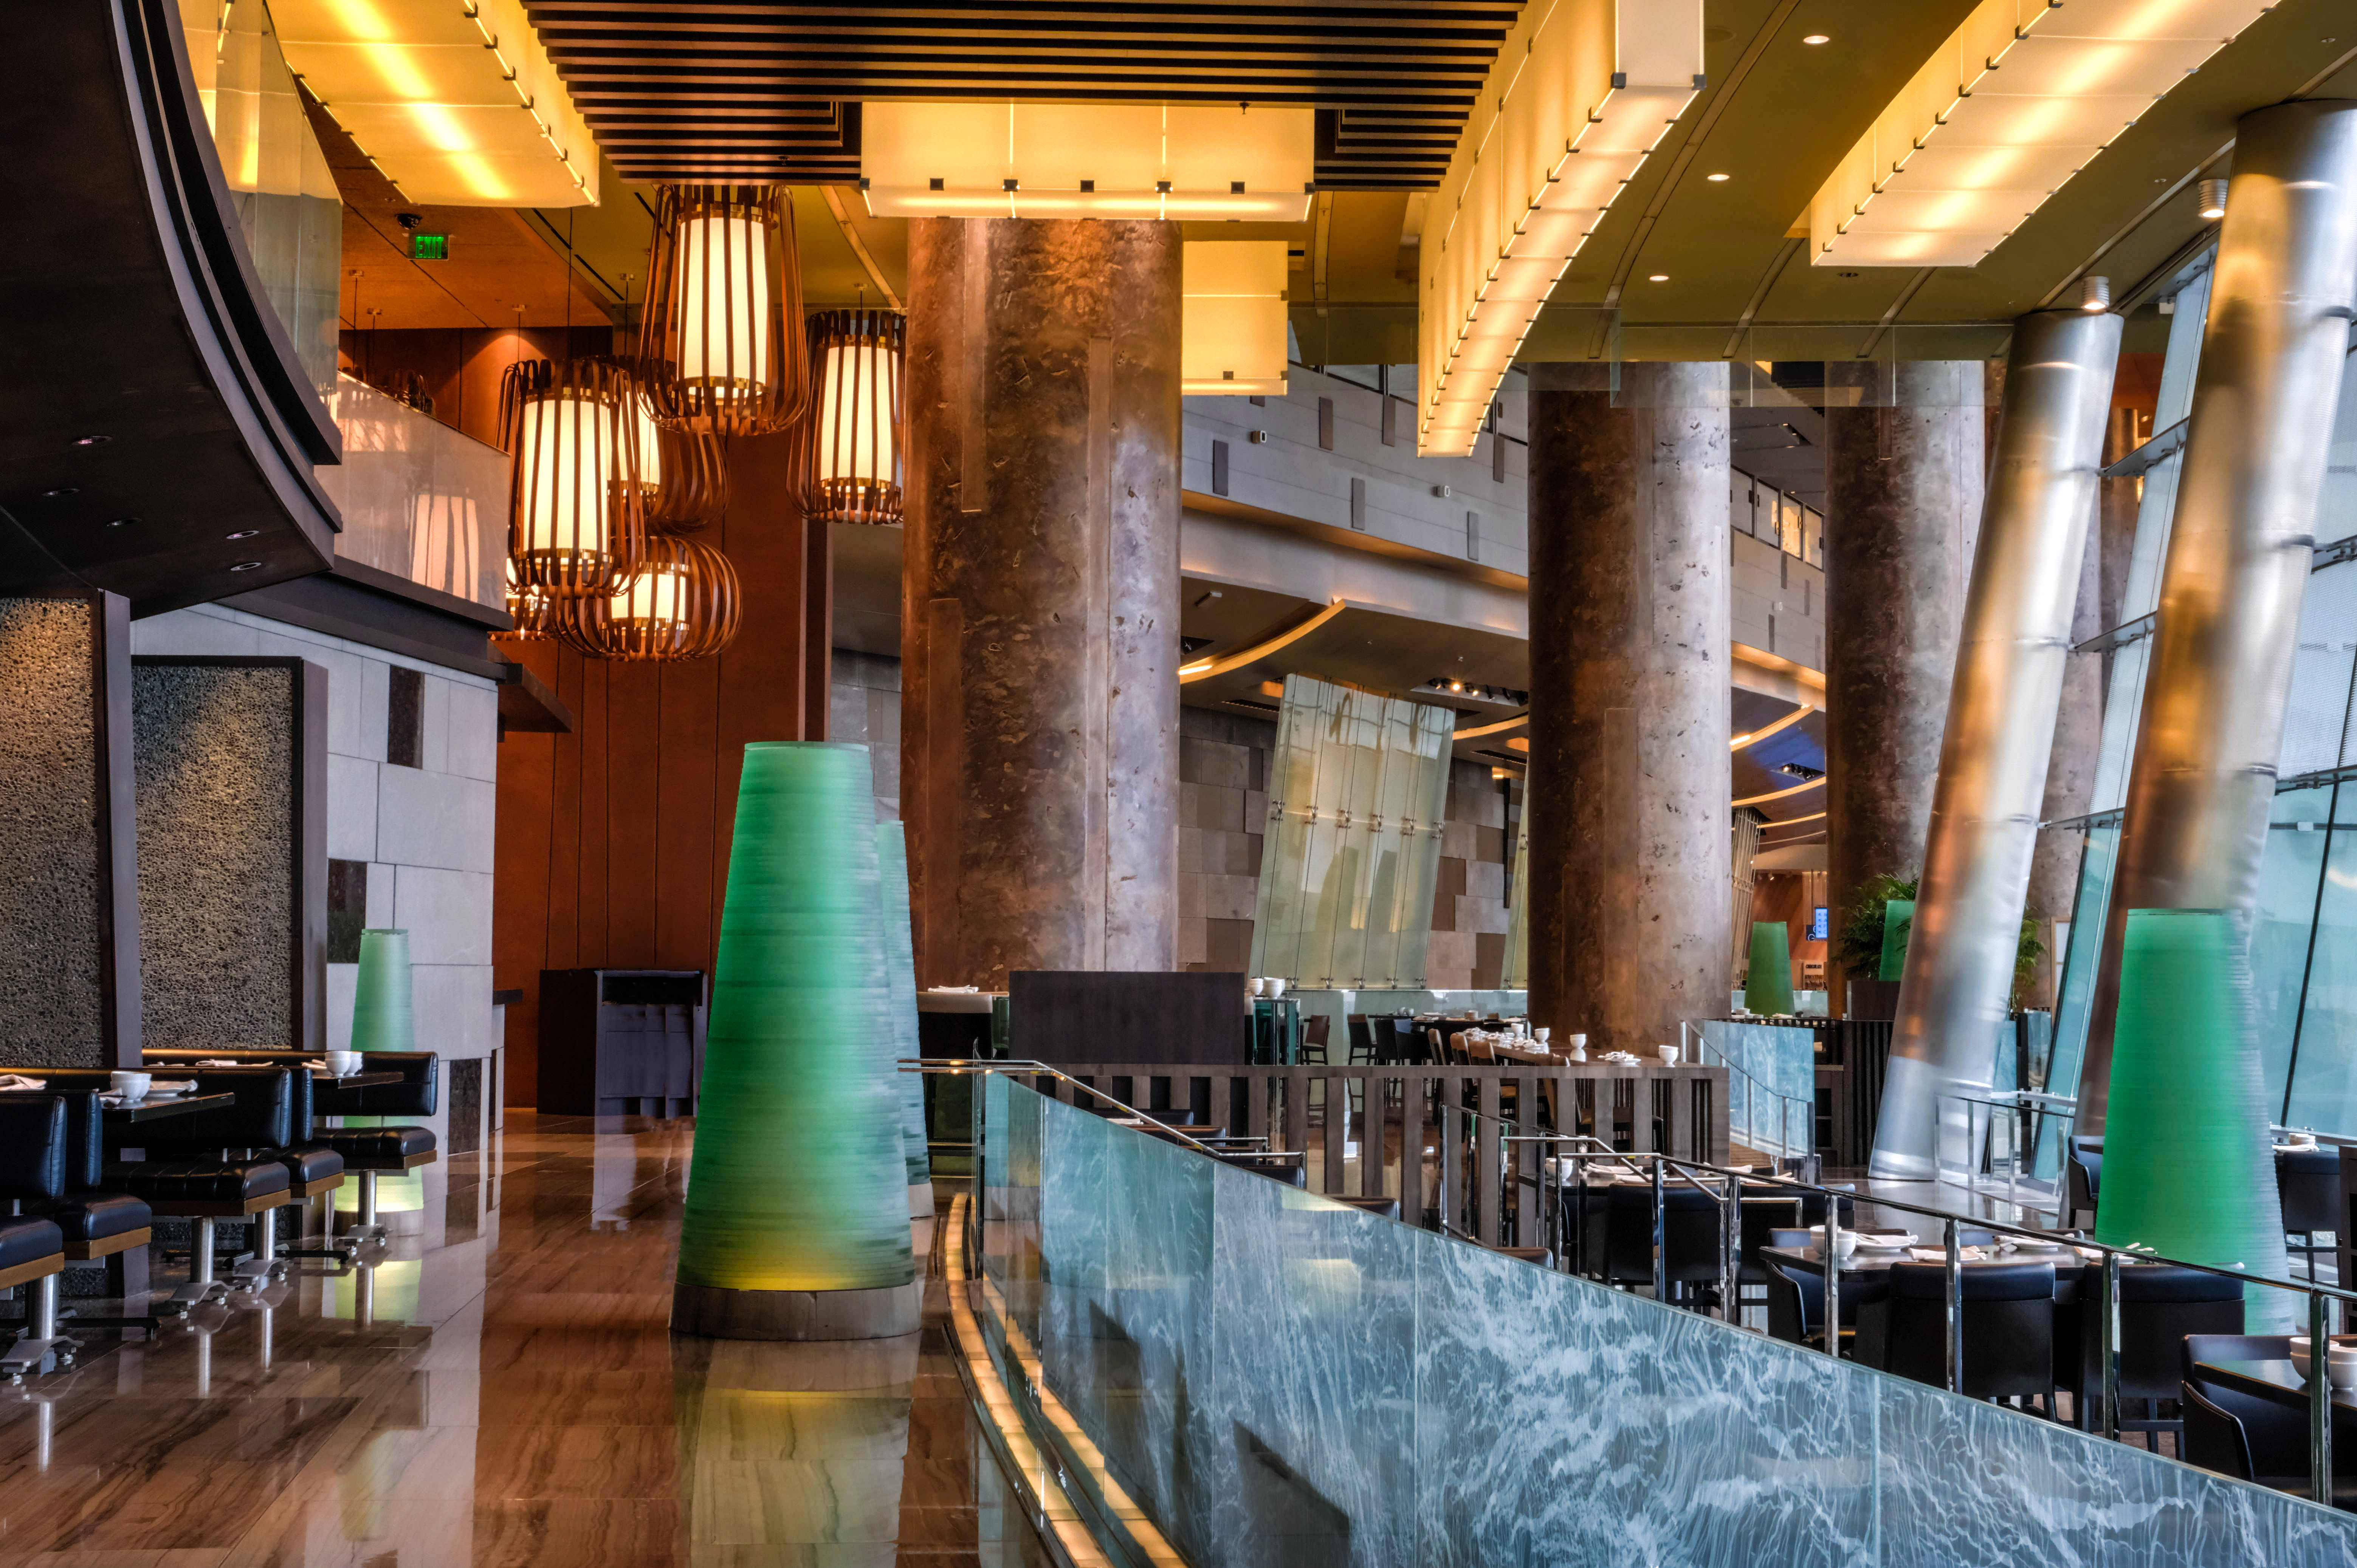 A restaurant dining room with green sculptures